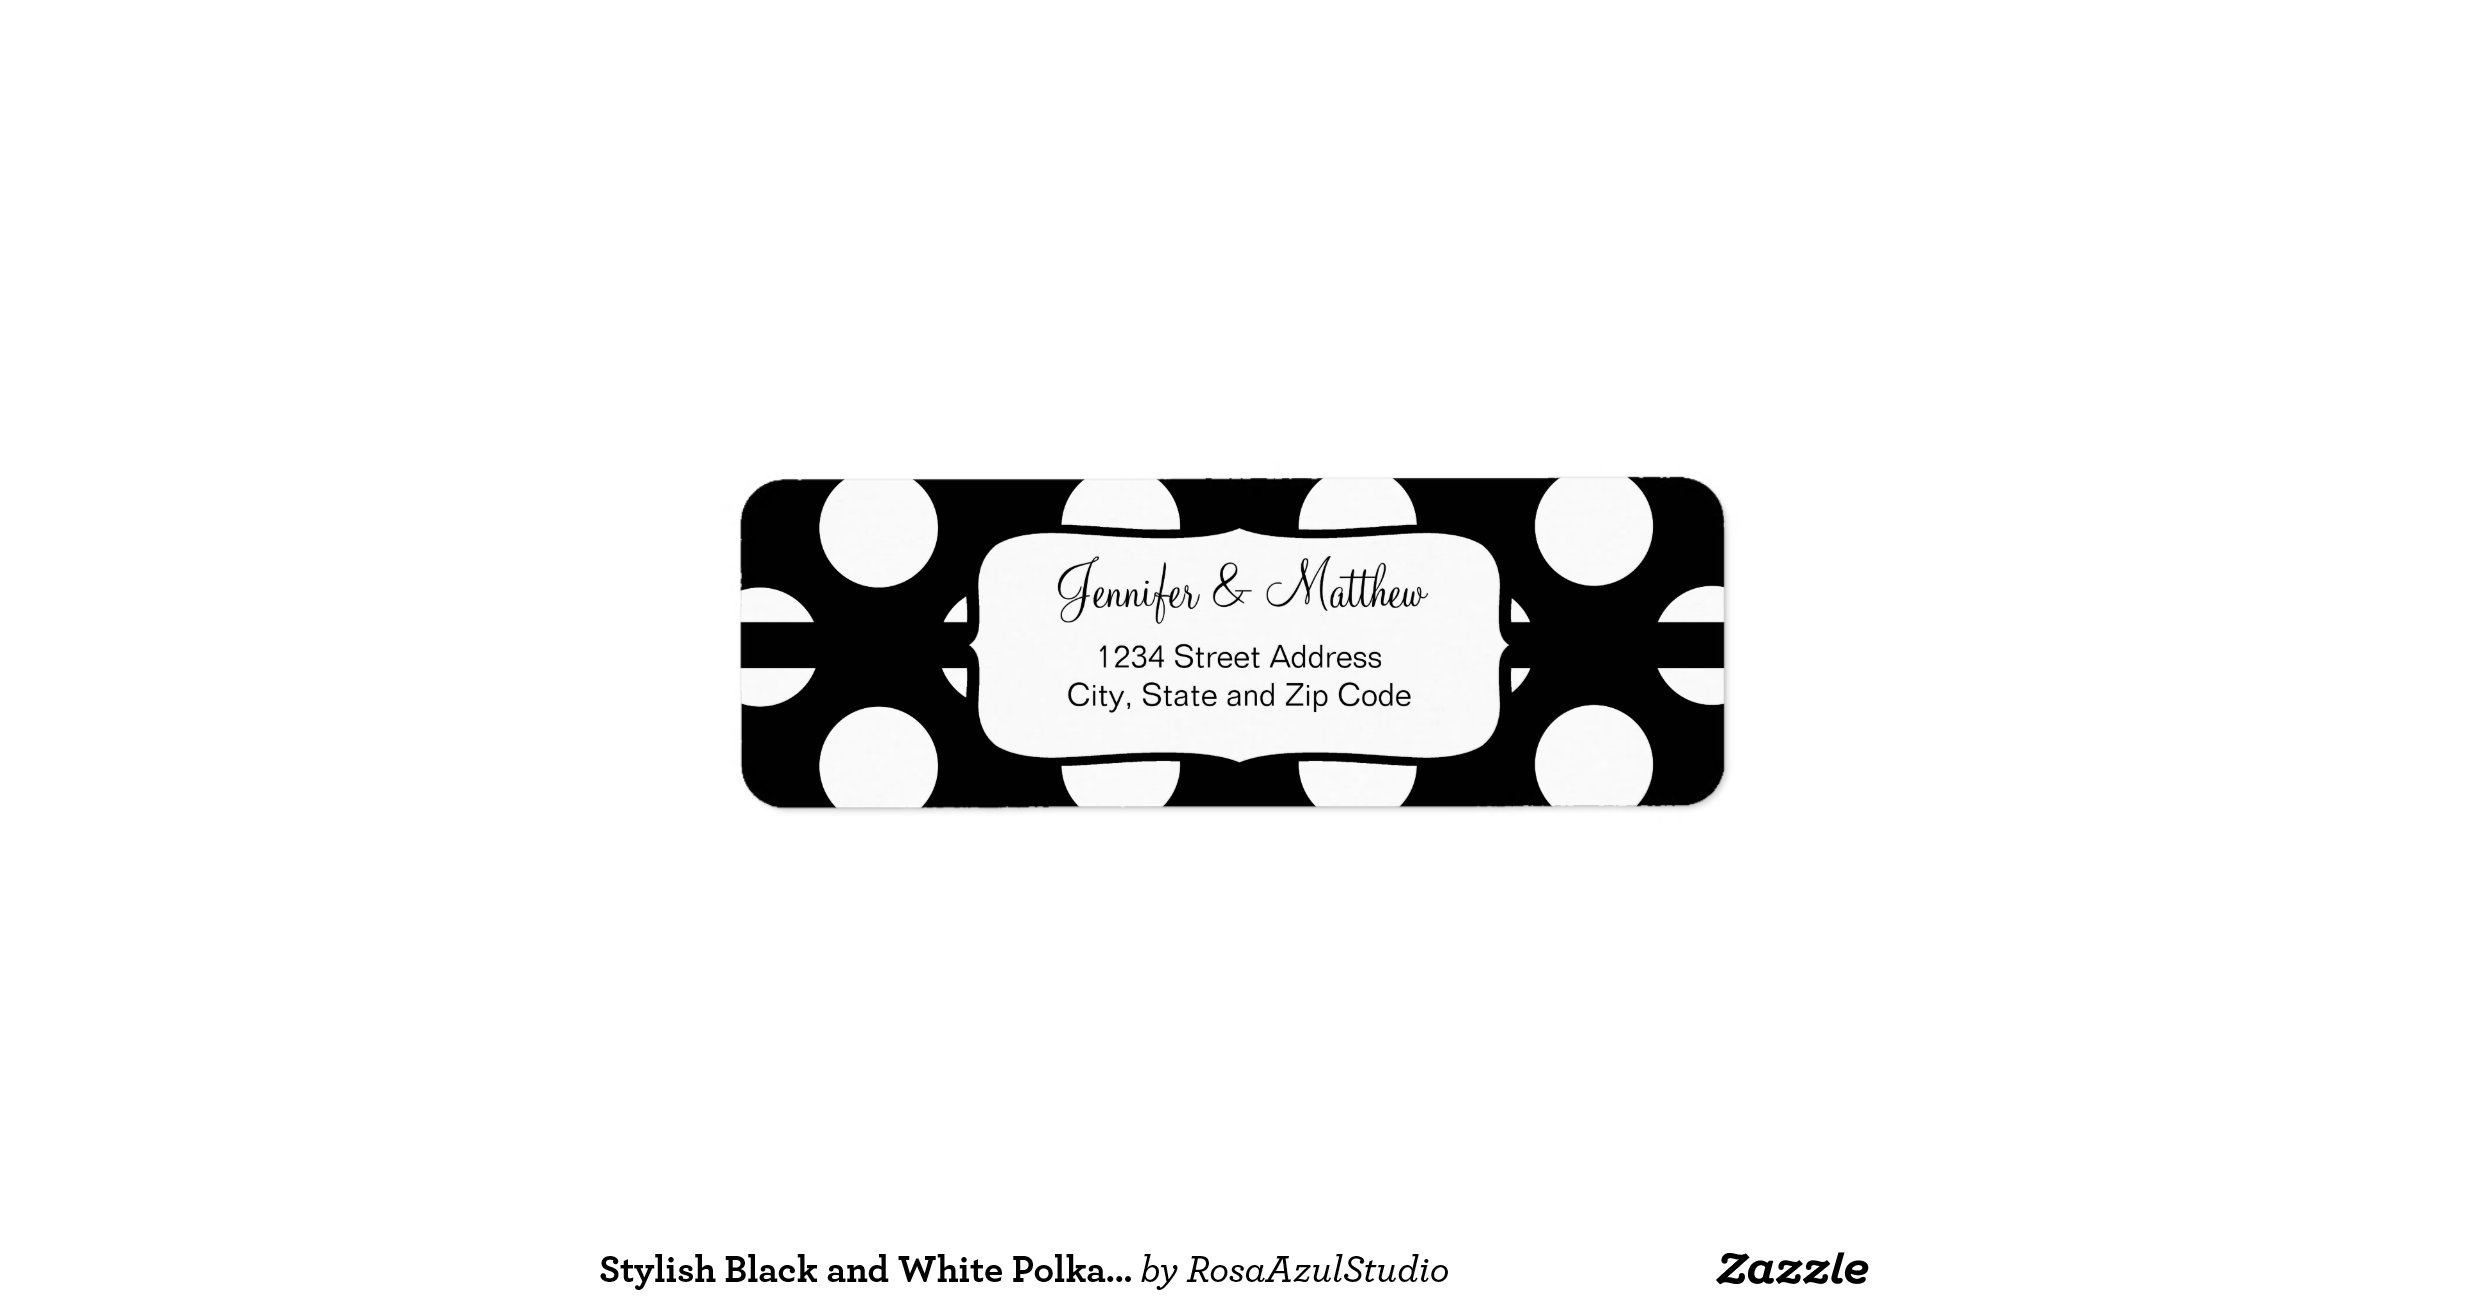 avery 6870 template - stylish black and white polka dots pattern return address